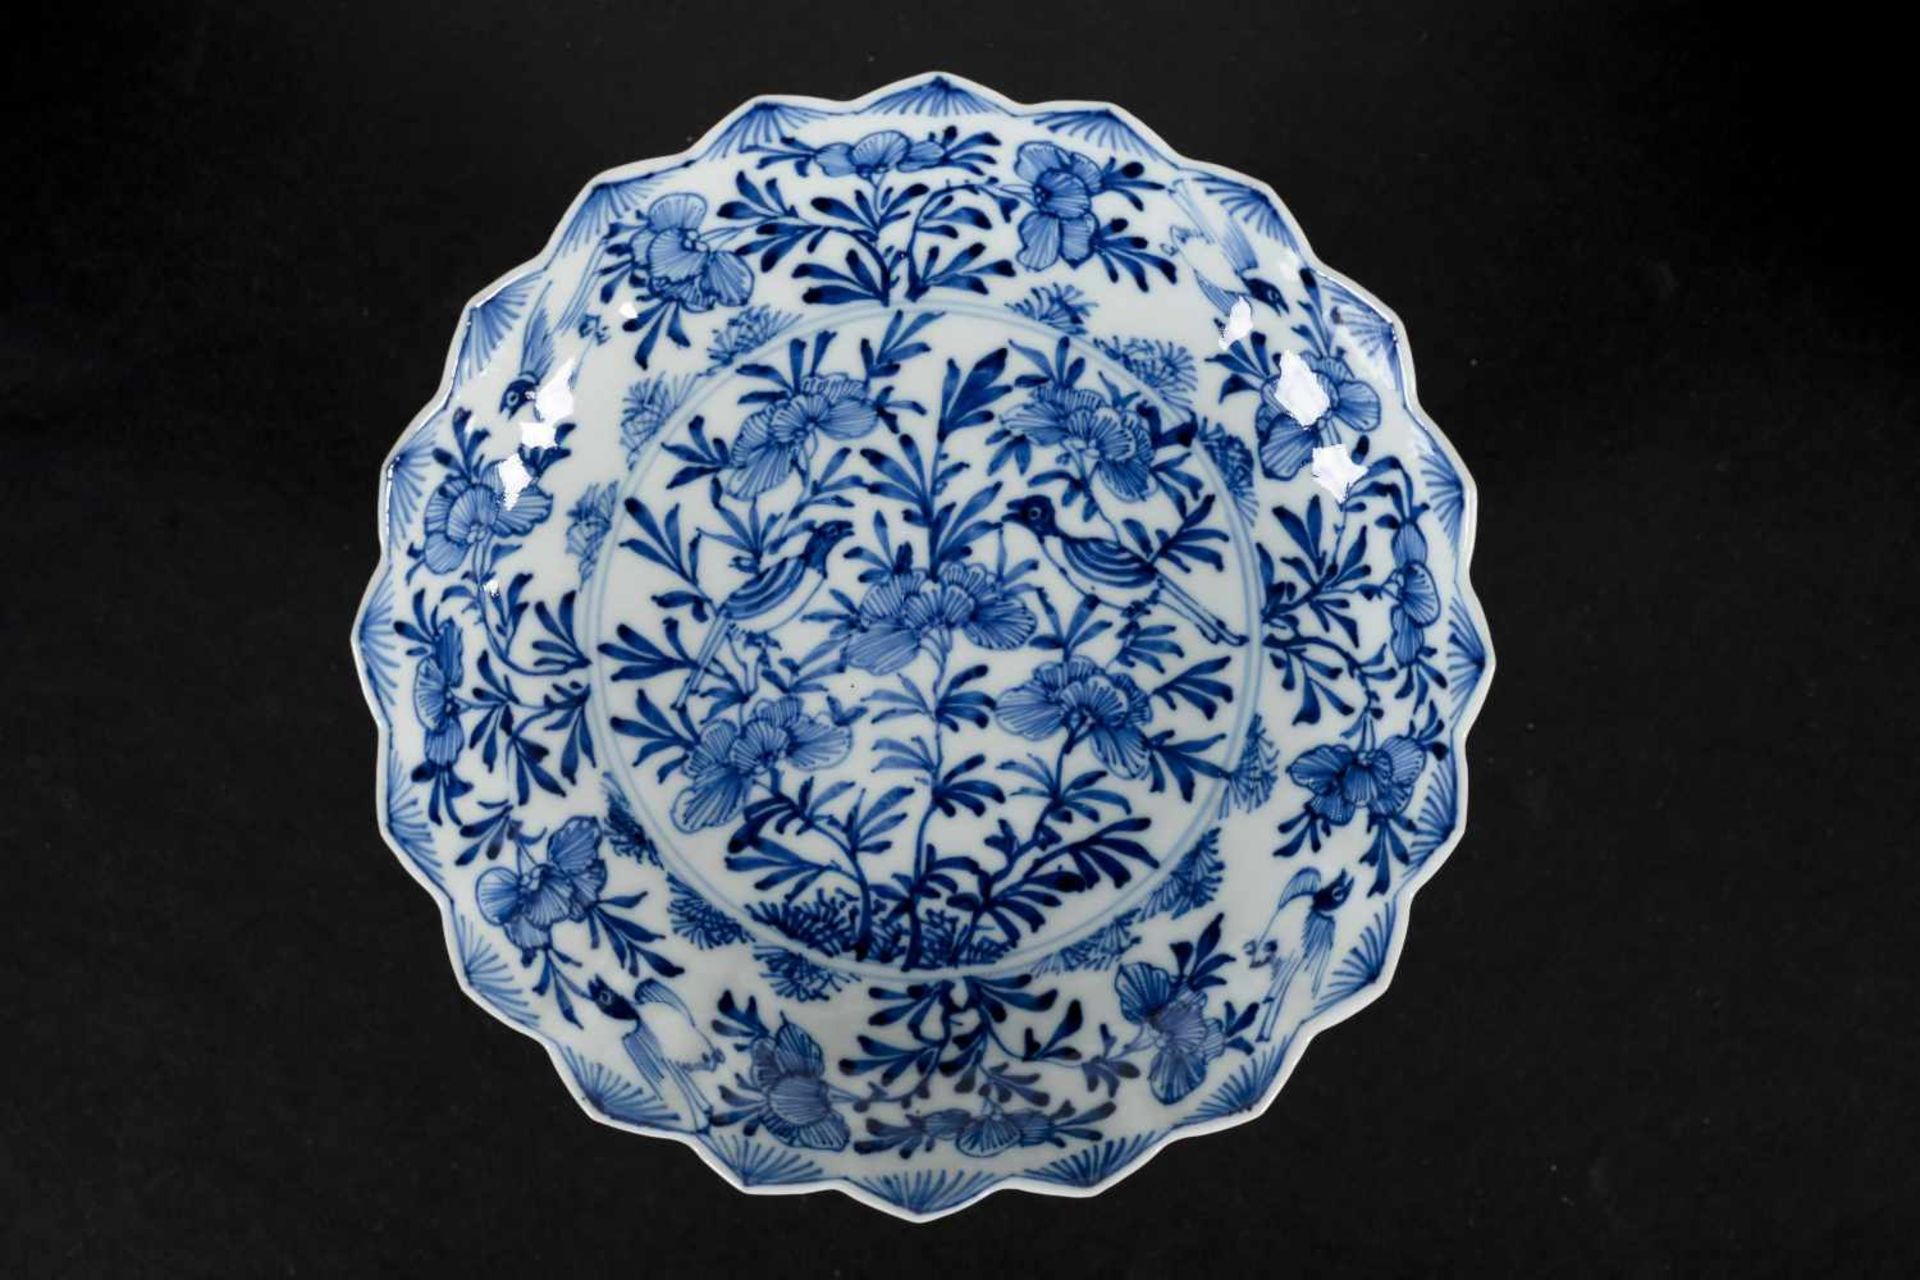 A set of six blue and white porcelain deep saucers with scalloped rim, decorated with flowers and - Bild 7 aus 8